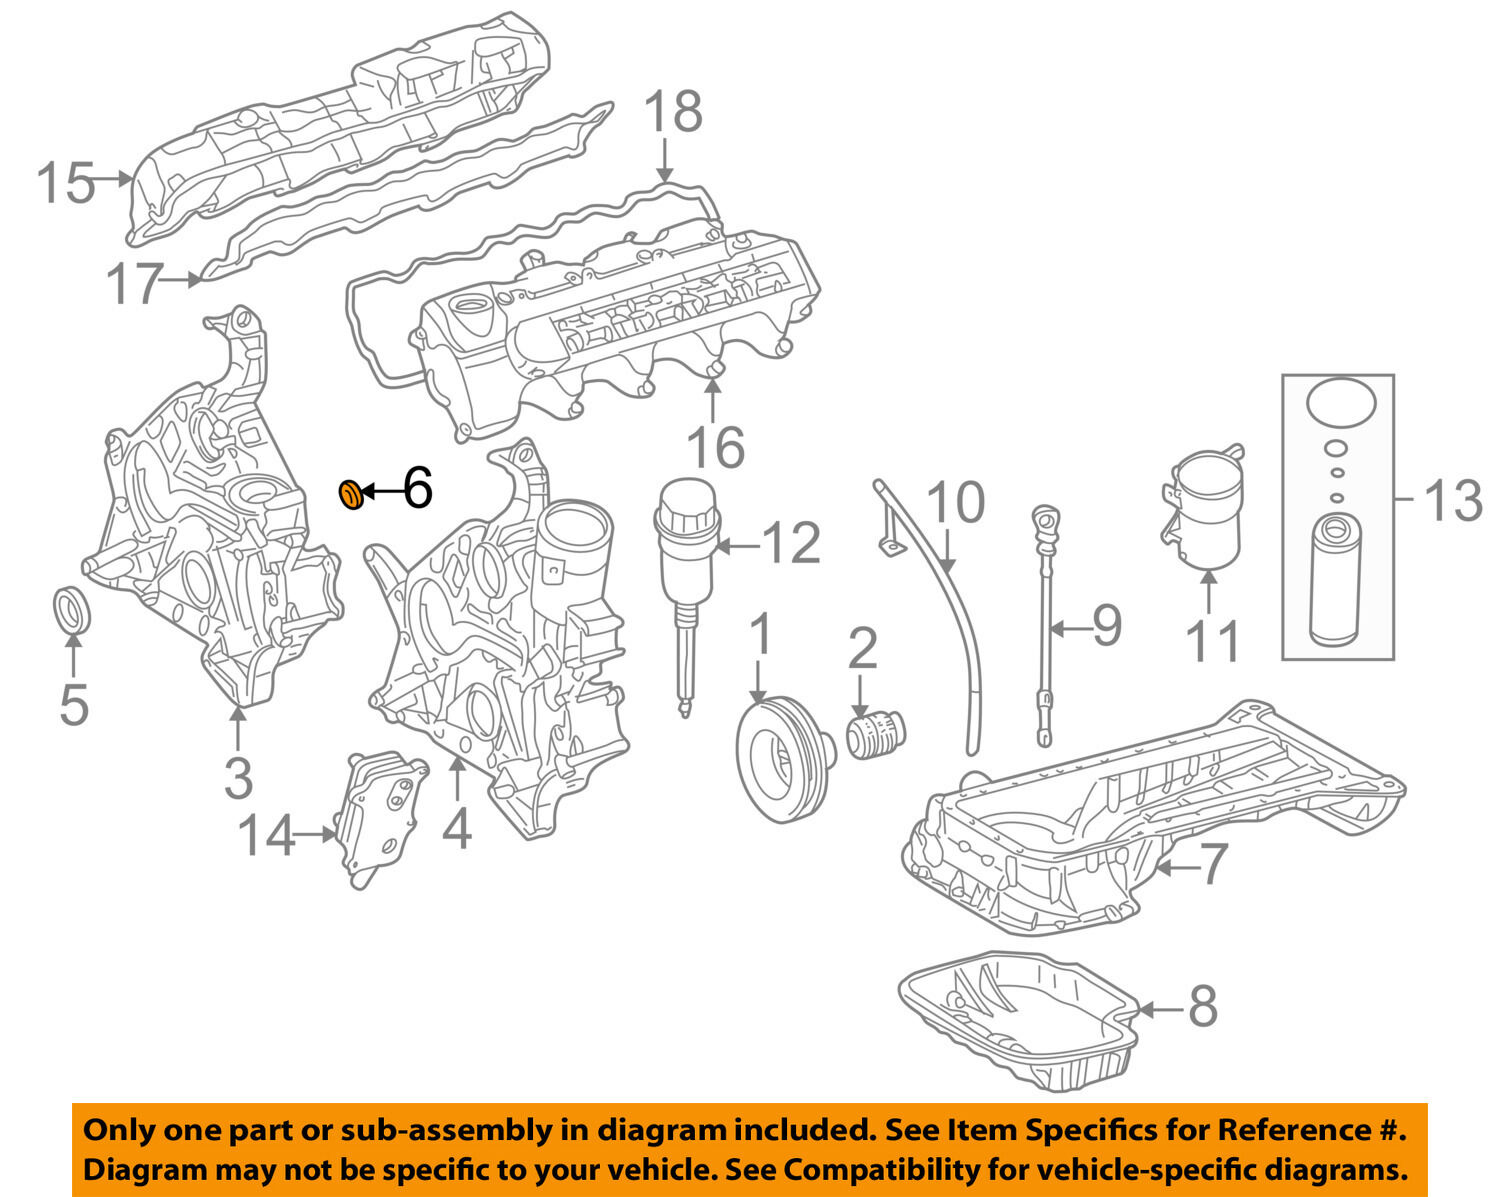 Engine Timing Cover Diagram Electrical Wiring Diagrams Subaru Genuine Oem Mercedes Benz Rear O Ring Seal 112 2